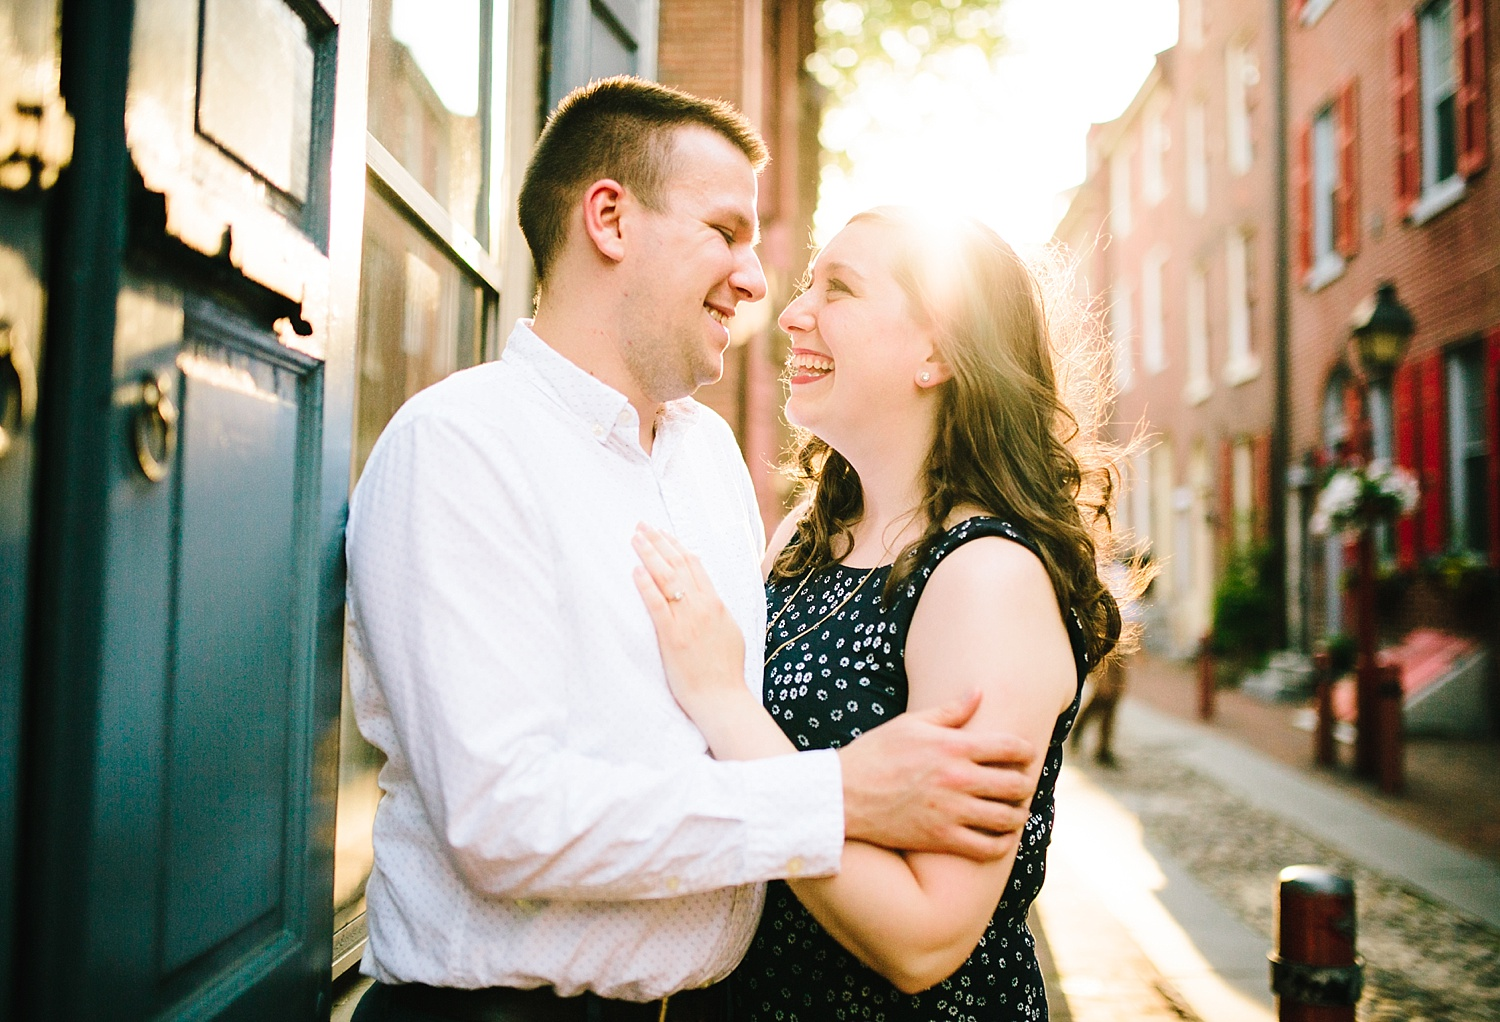 lizandbrandon_oldcity_philadelphia_elfrethsalley_engagement_session_image002.jpg